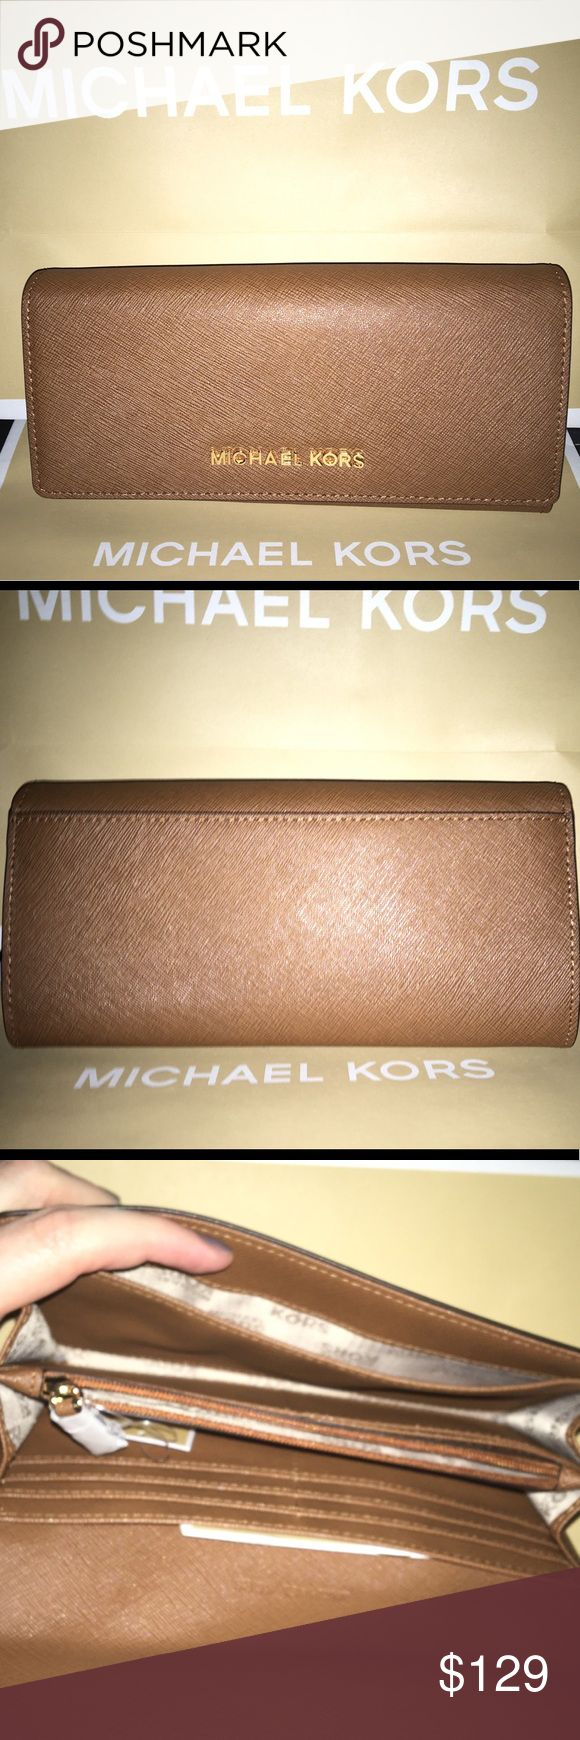 Michael Kors Jet Set Travel Wallet NWT Michael Kors Jet Set Travel Wallet! MK carryall design and water and scratch-resistant saffiano leather in signature luggage brown color! Stainless-steel, gold-toned Michael Kors lettering. 10 internal card slots, 1 internal zip-close pocket, 2 side internal slip pockets, 2 internal open compartments, and 1 external back slip picket. Light-tan internal linen lining for easy-finding of belongings. Snap-closure.  Item code: 35H6GYAE3L Michael Kors Bags…